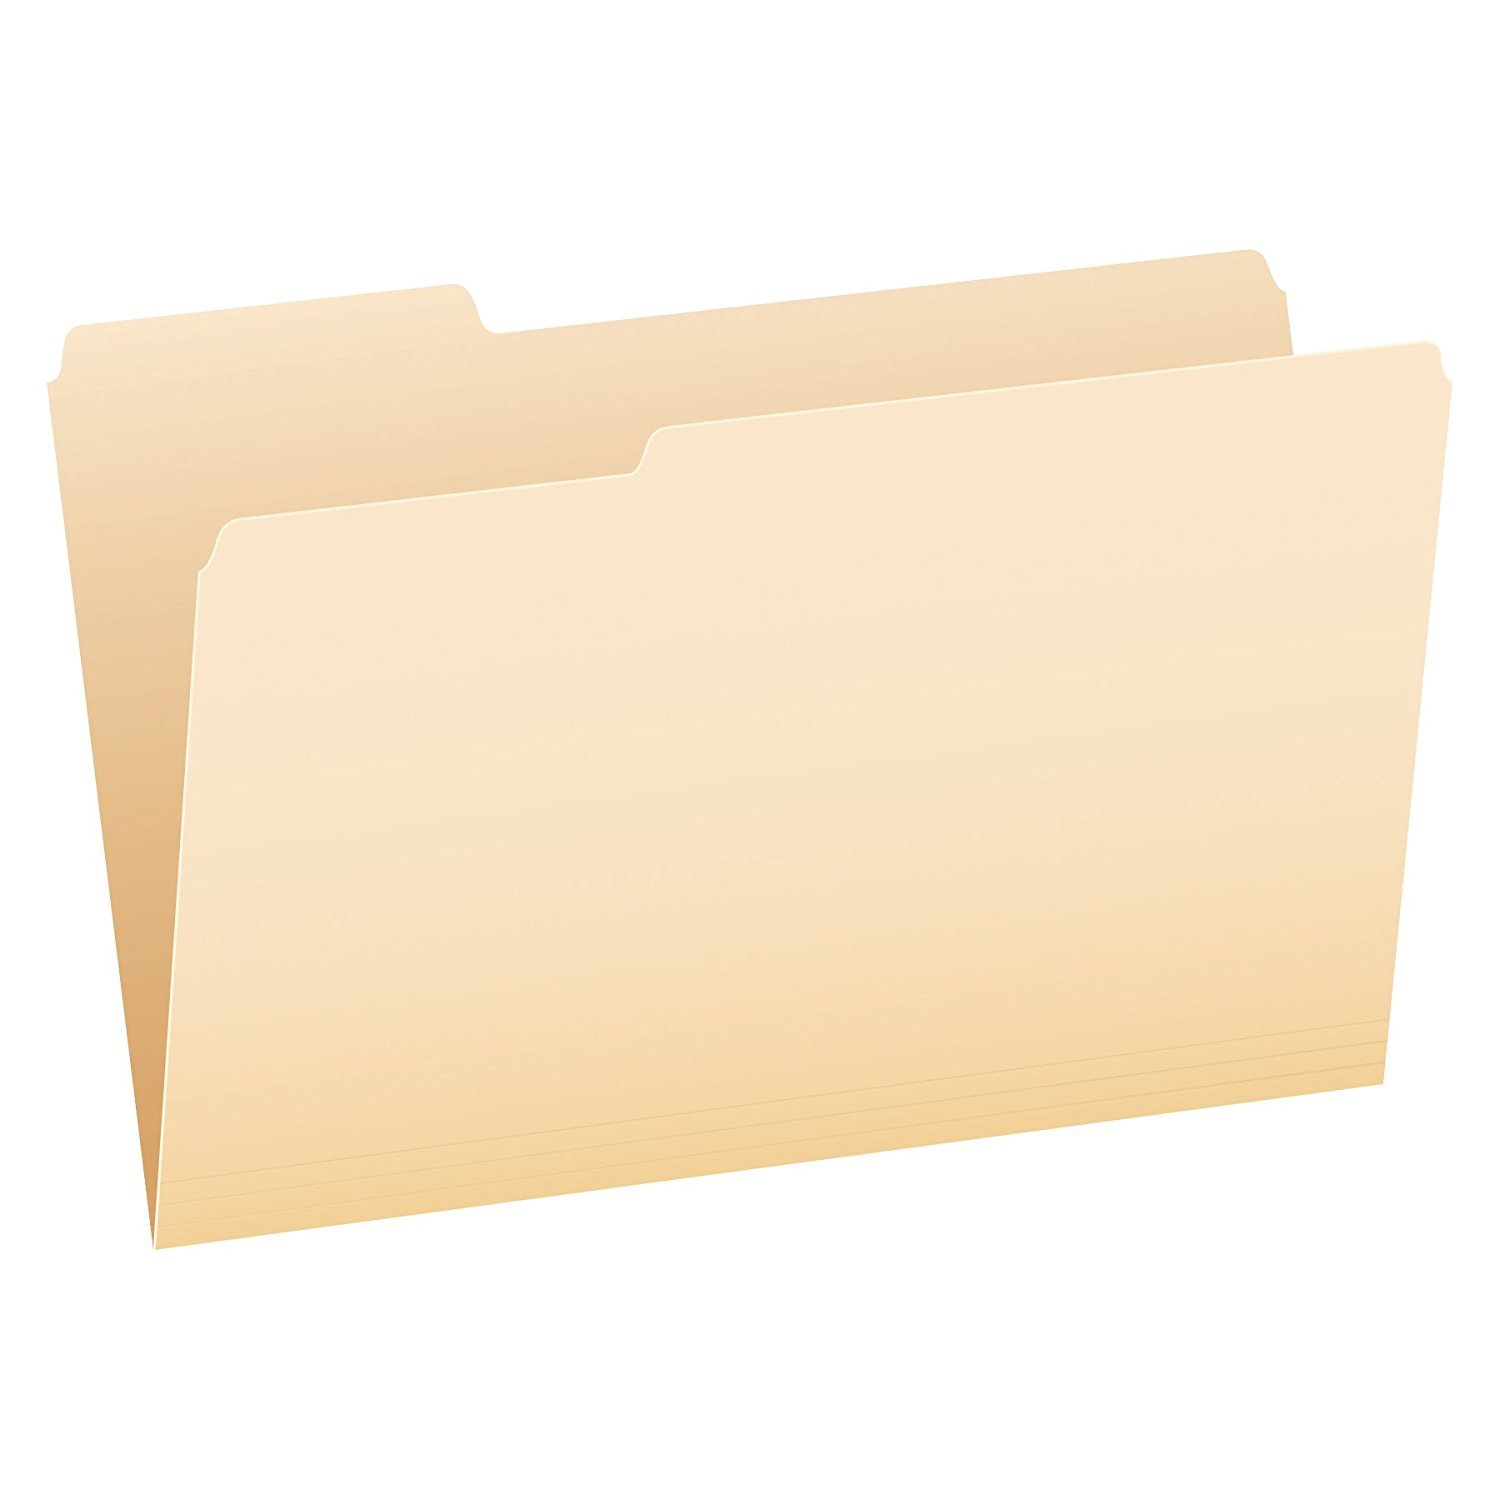 Pendaflex File Folders, Legal Size, Manila, 1/3 Cut, 100/BX (753 1/3) 2-Pack